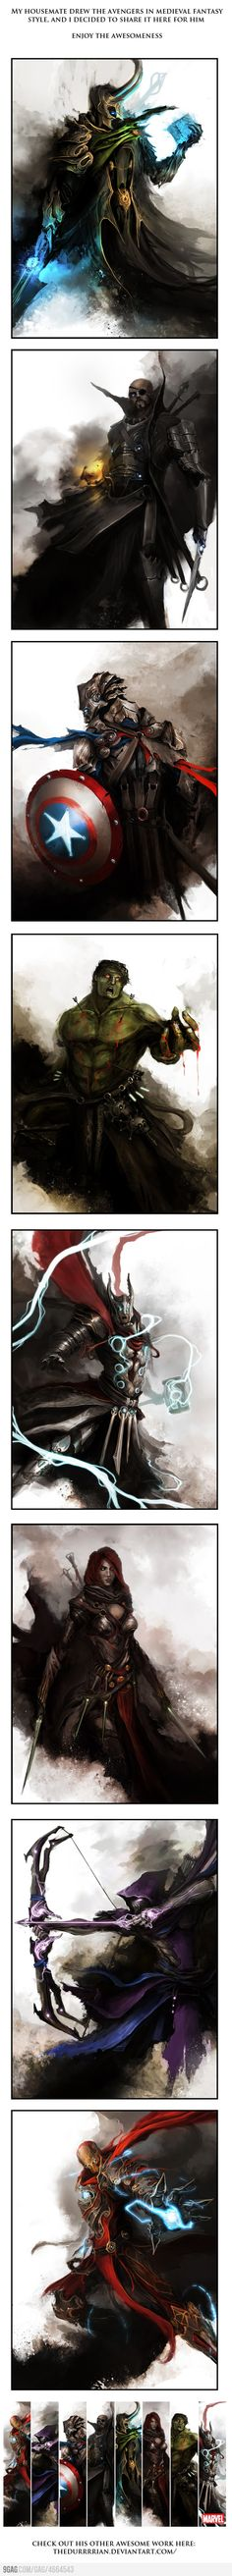 WOW, Avengers... and by that I mean World of Warcraft ;)